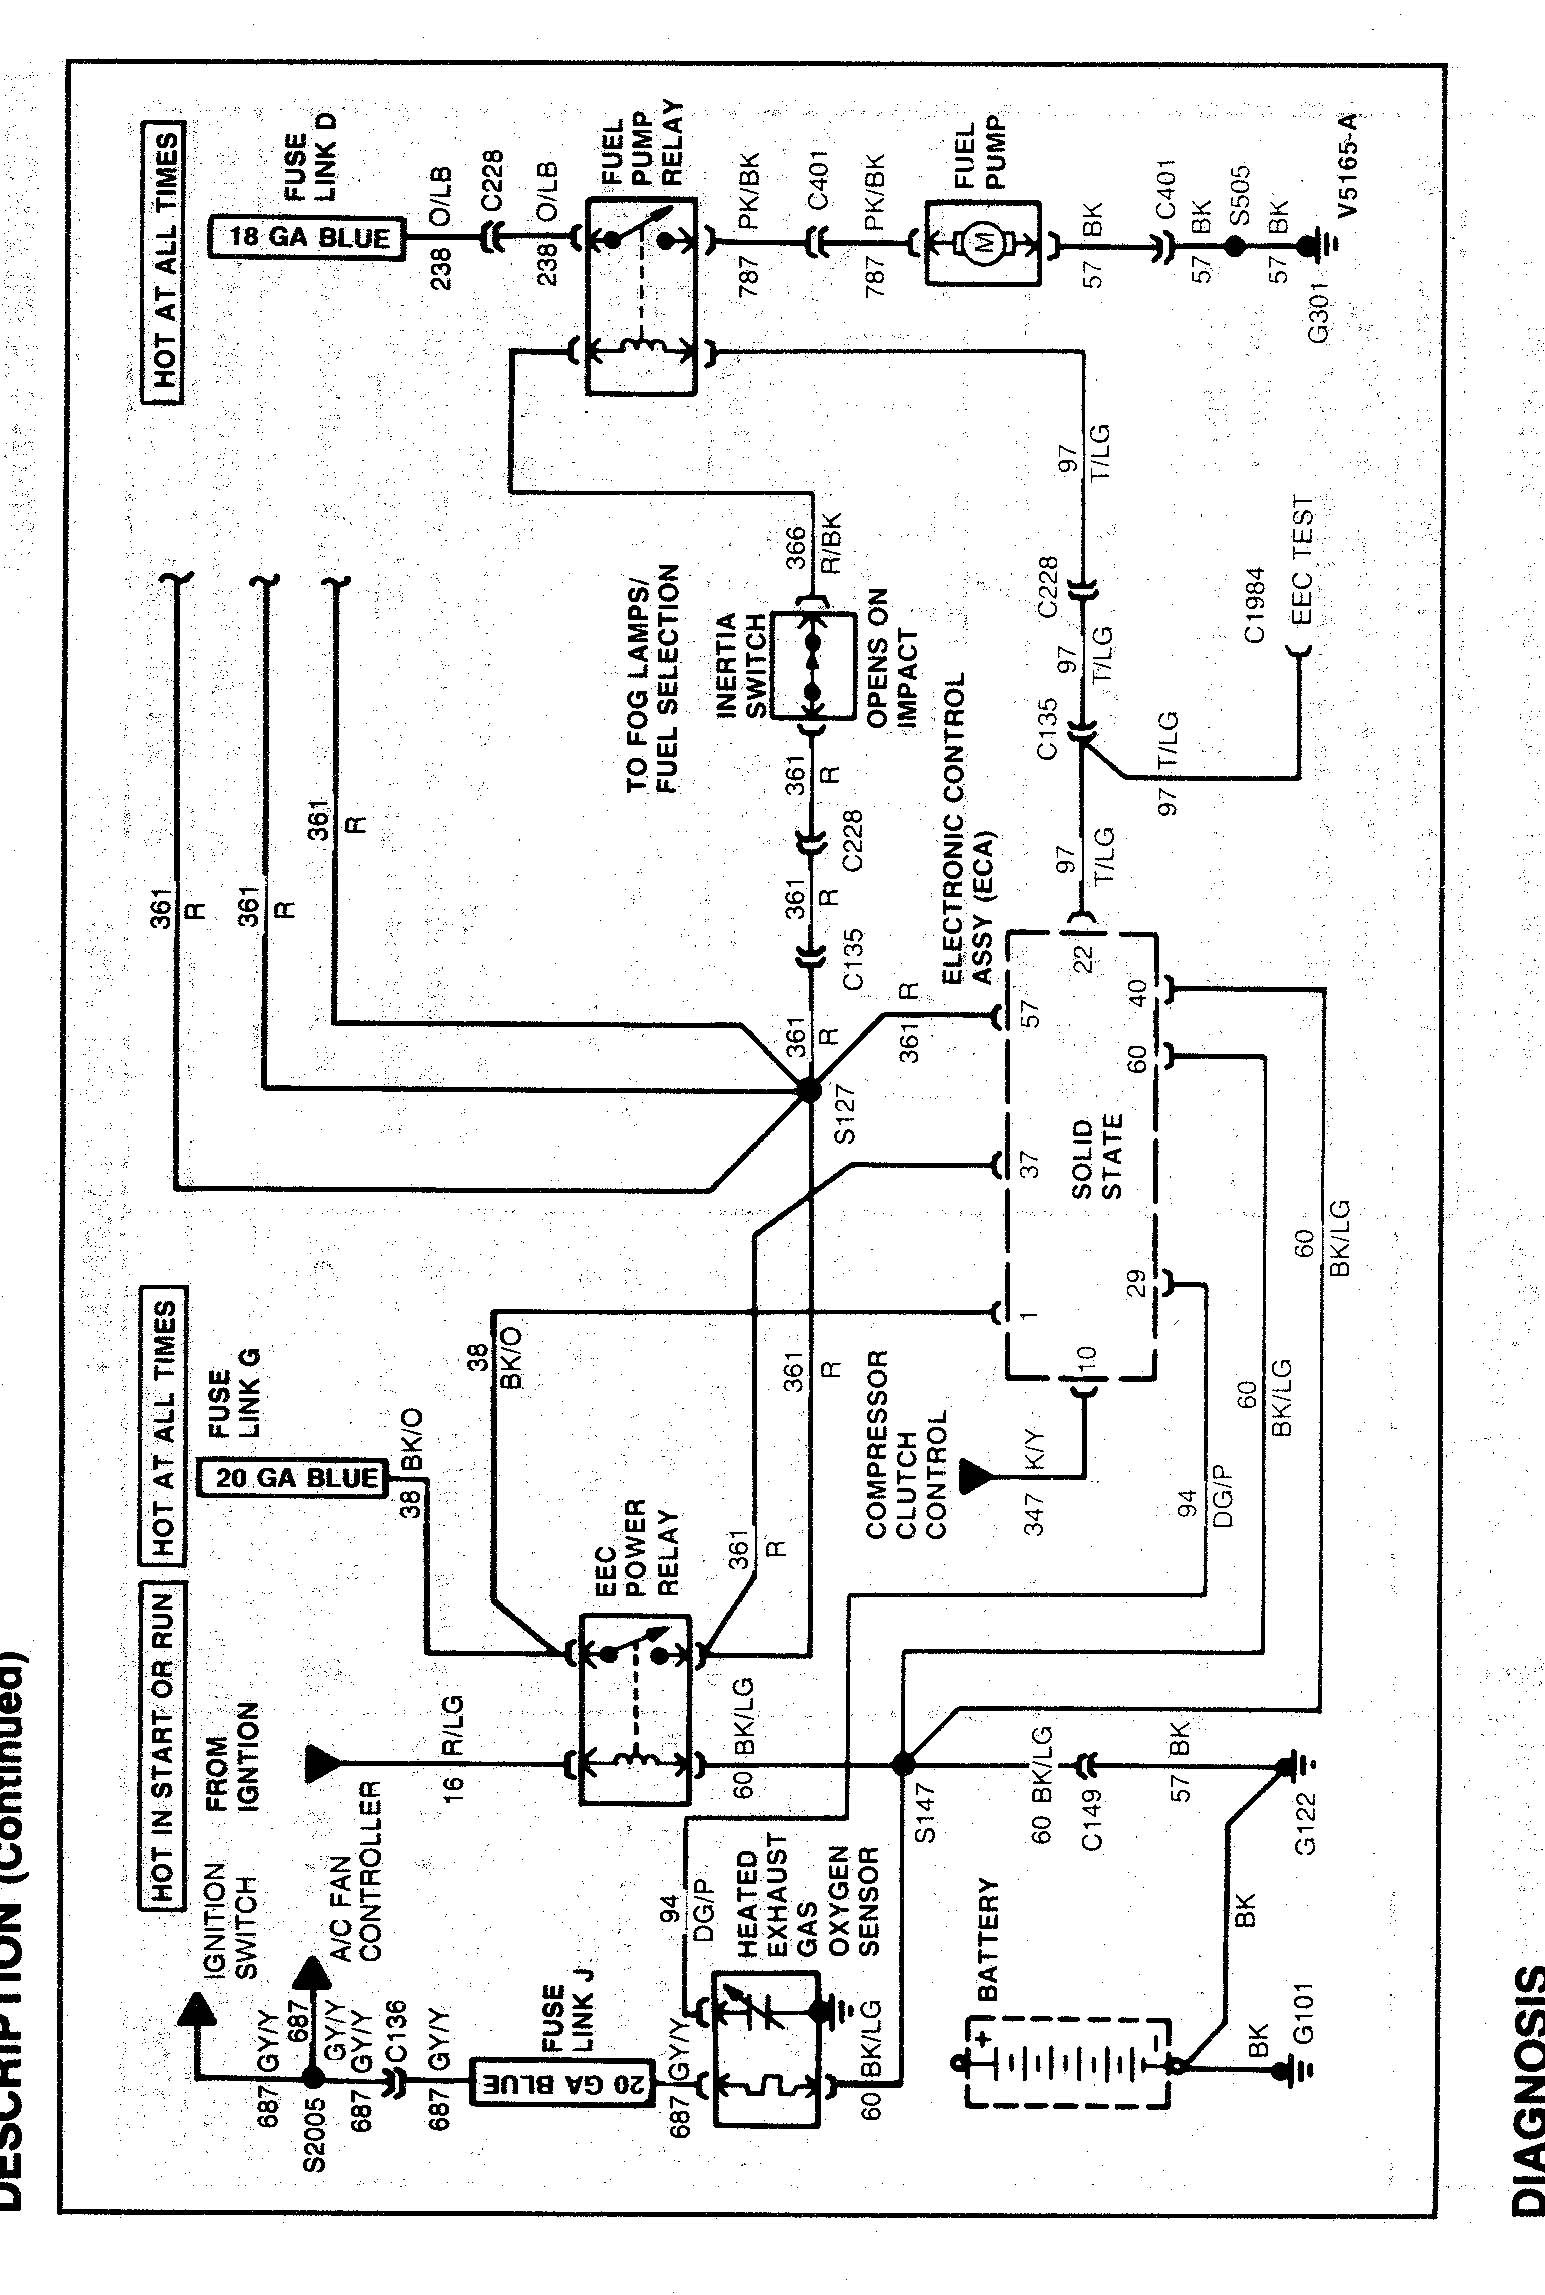 2004 ford mustang wiring diagram 2004 image wiring 2004 mustang fuel pump wiring diagram 2004 image on 2004 ford mustang wiring diagram